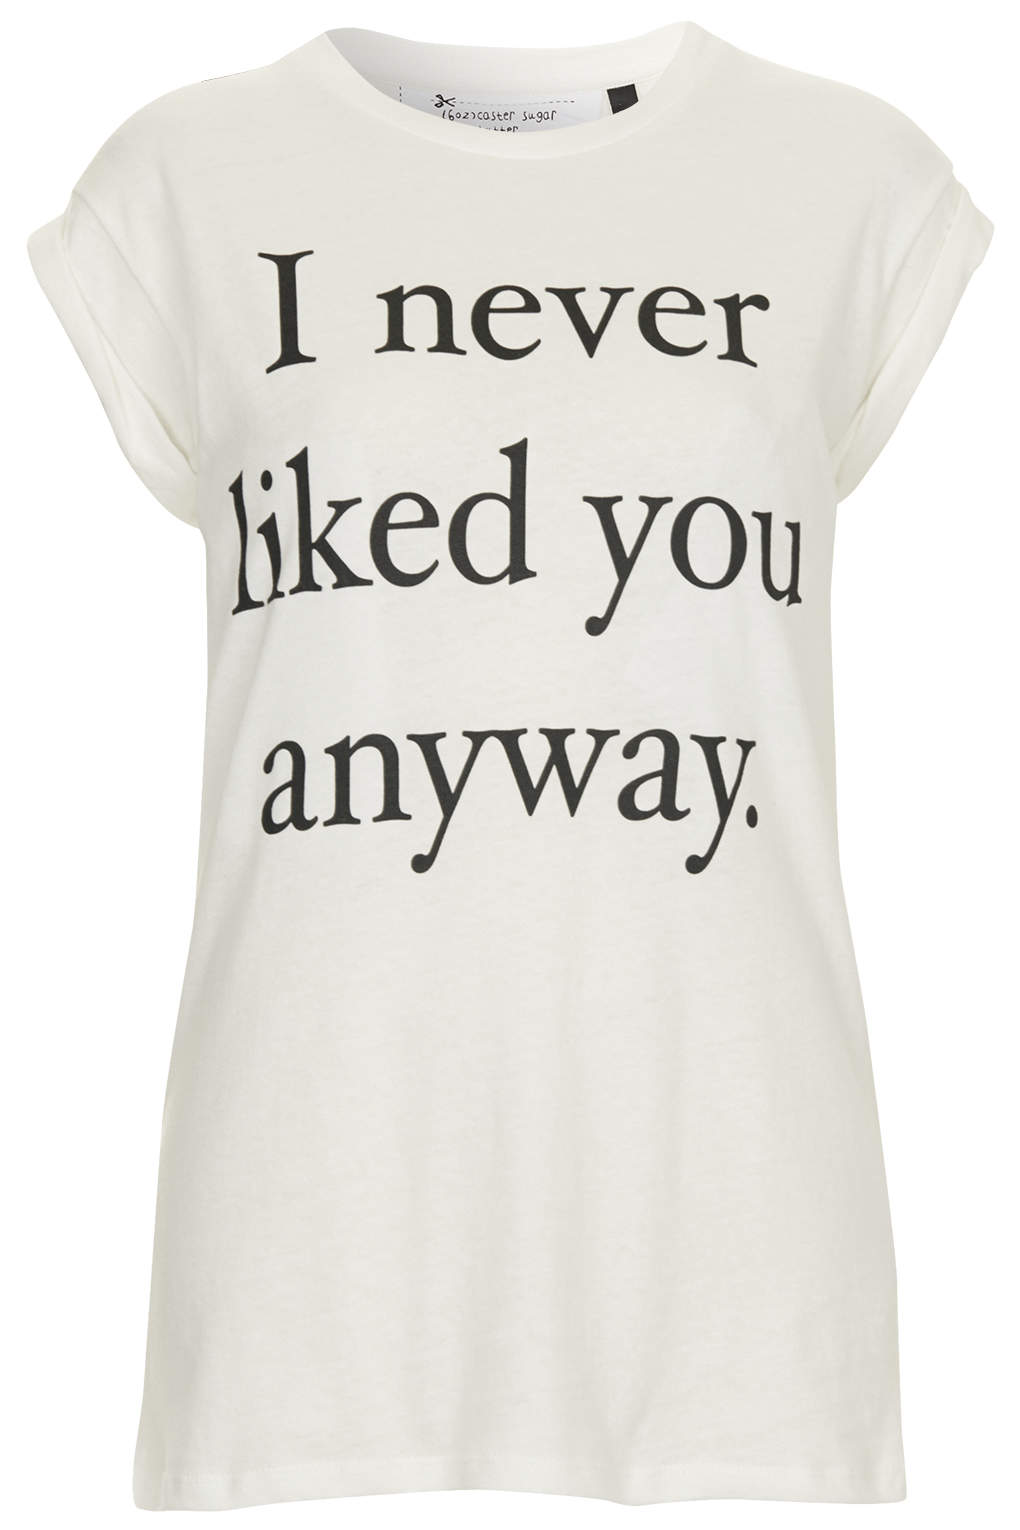 I Never Liked You Anyway Tee By Tee And Cake